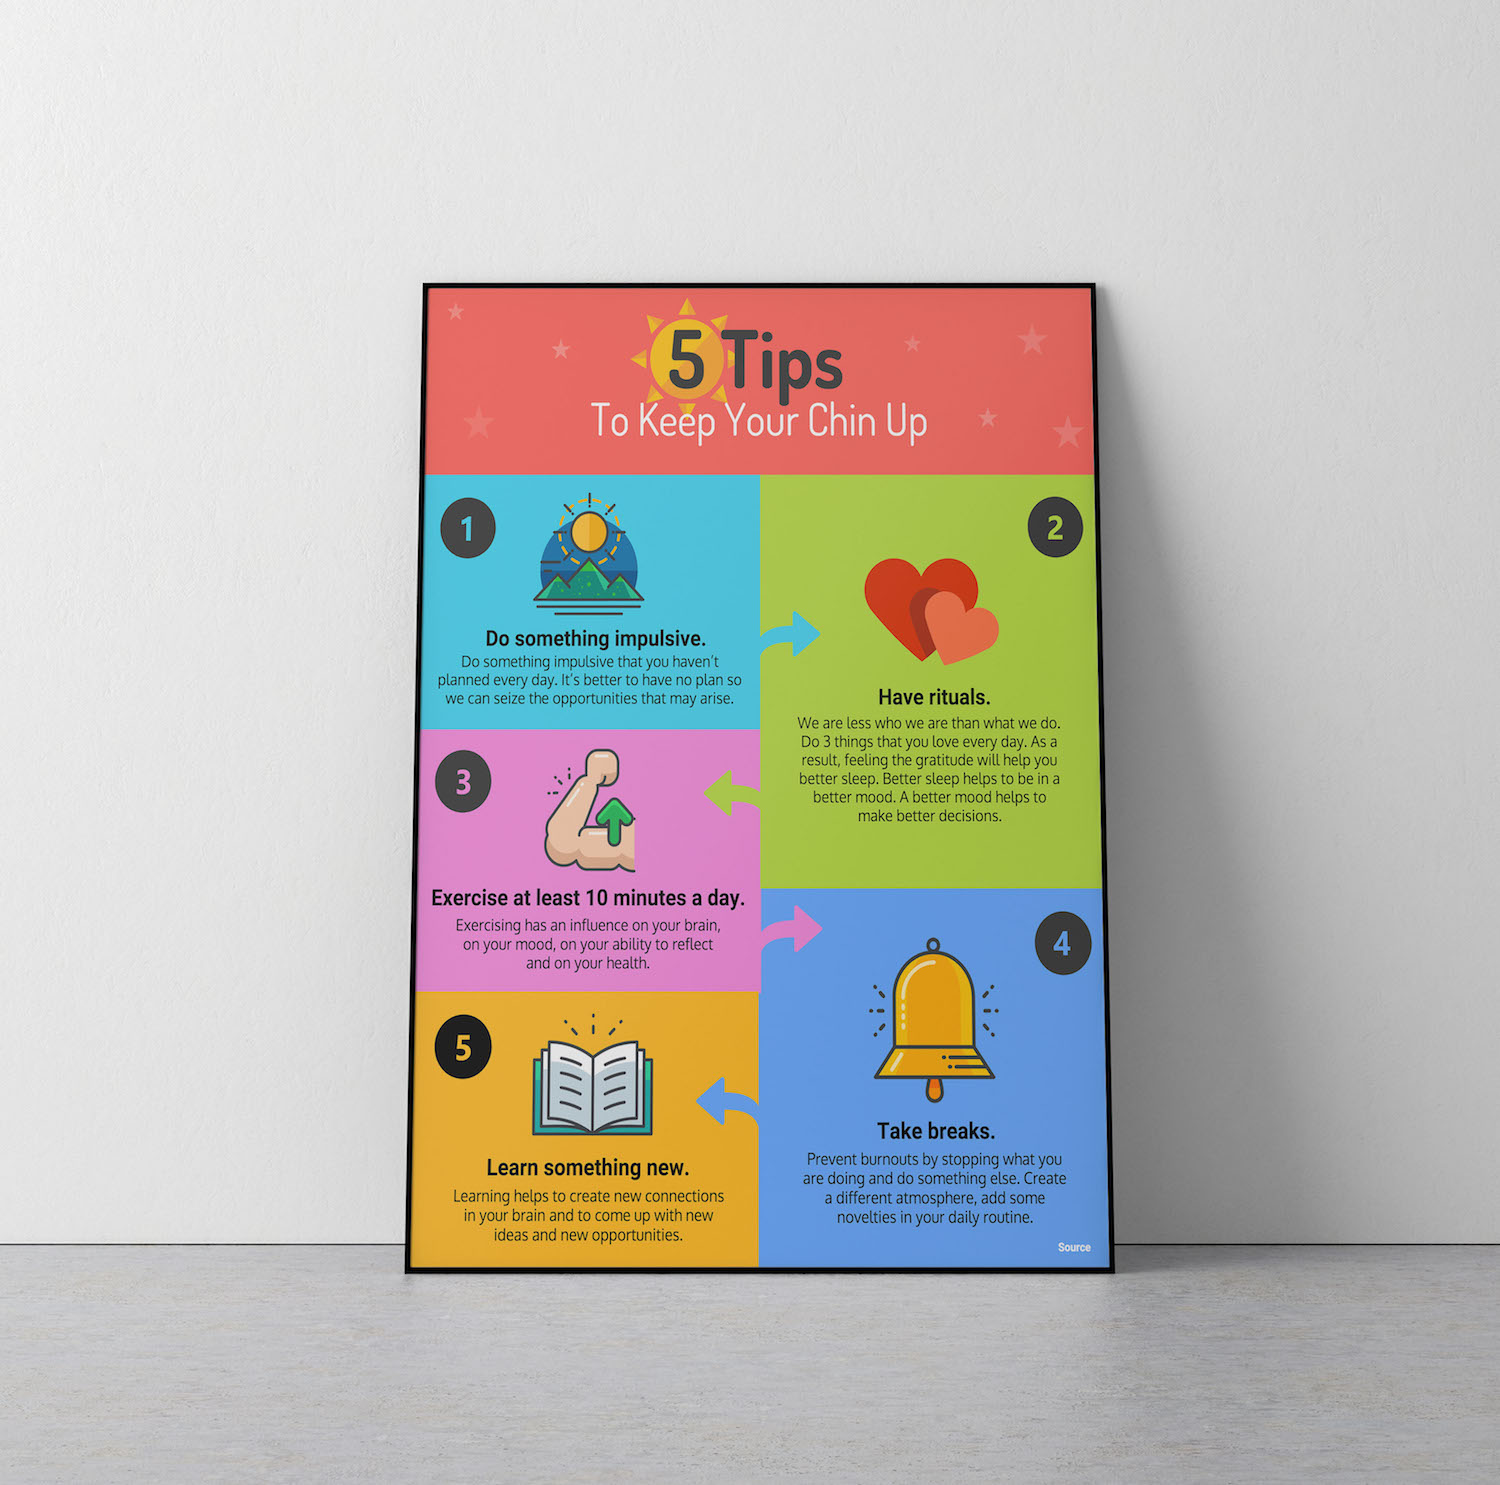 5 Tips To Keep Your Chin Up - Venngage Infographic Templates